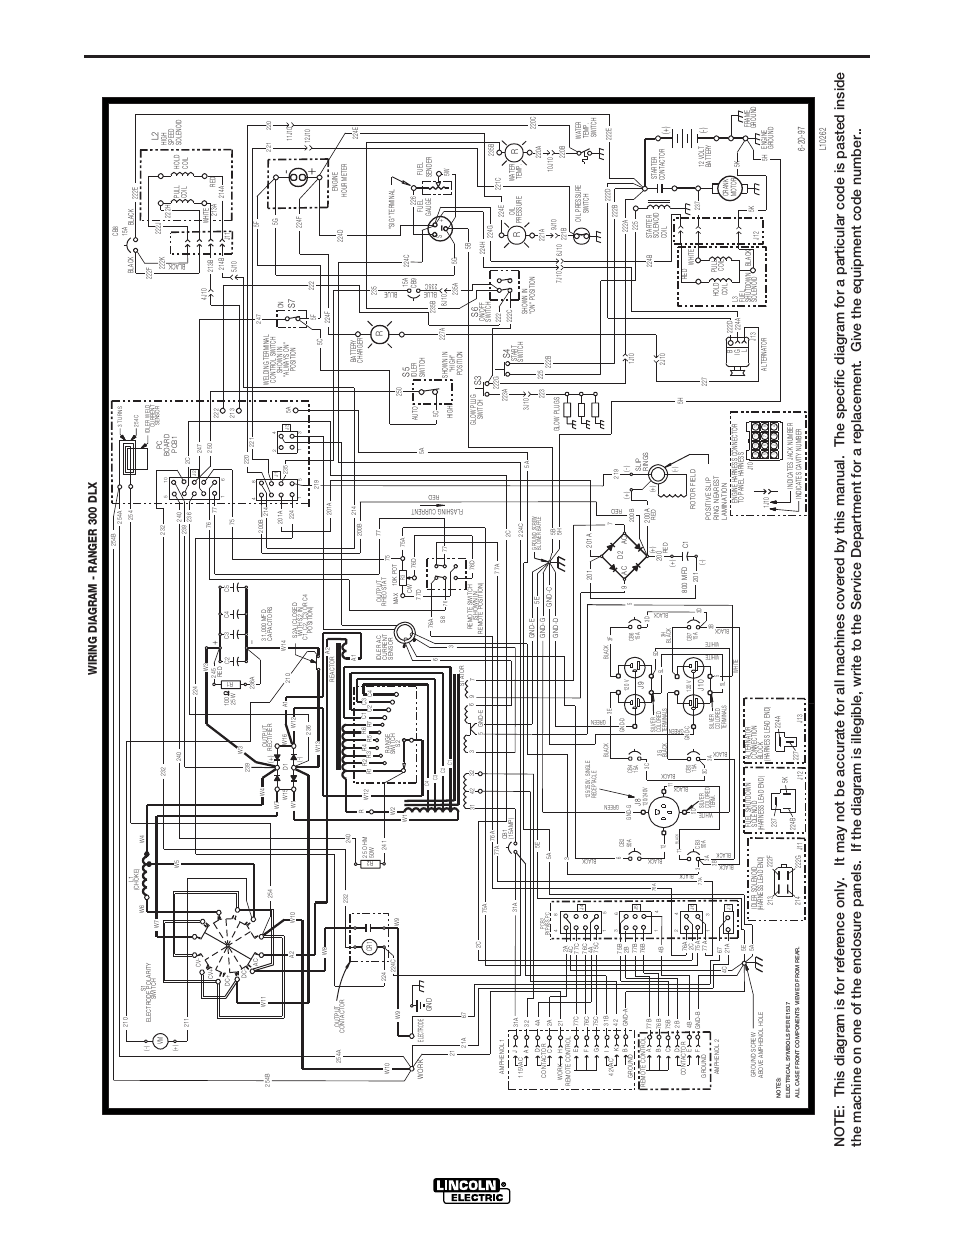 Lincoln Electric Wiring Diagram Archive Of Automotive 225 Welder Ranger 300 Dlx Rh Manualsdir Com Motor